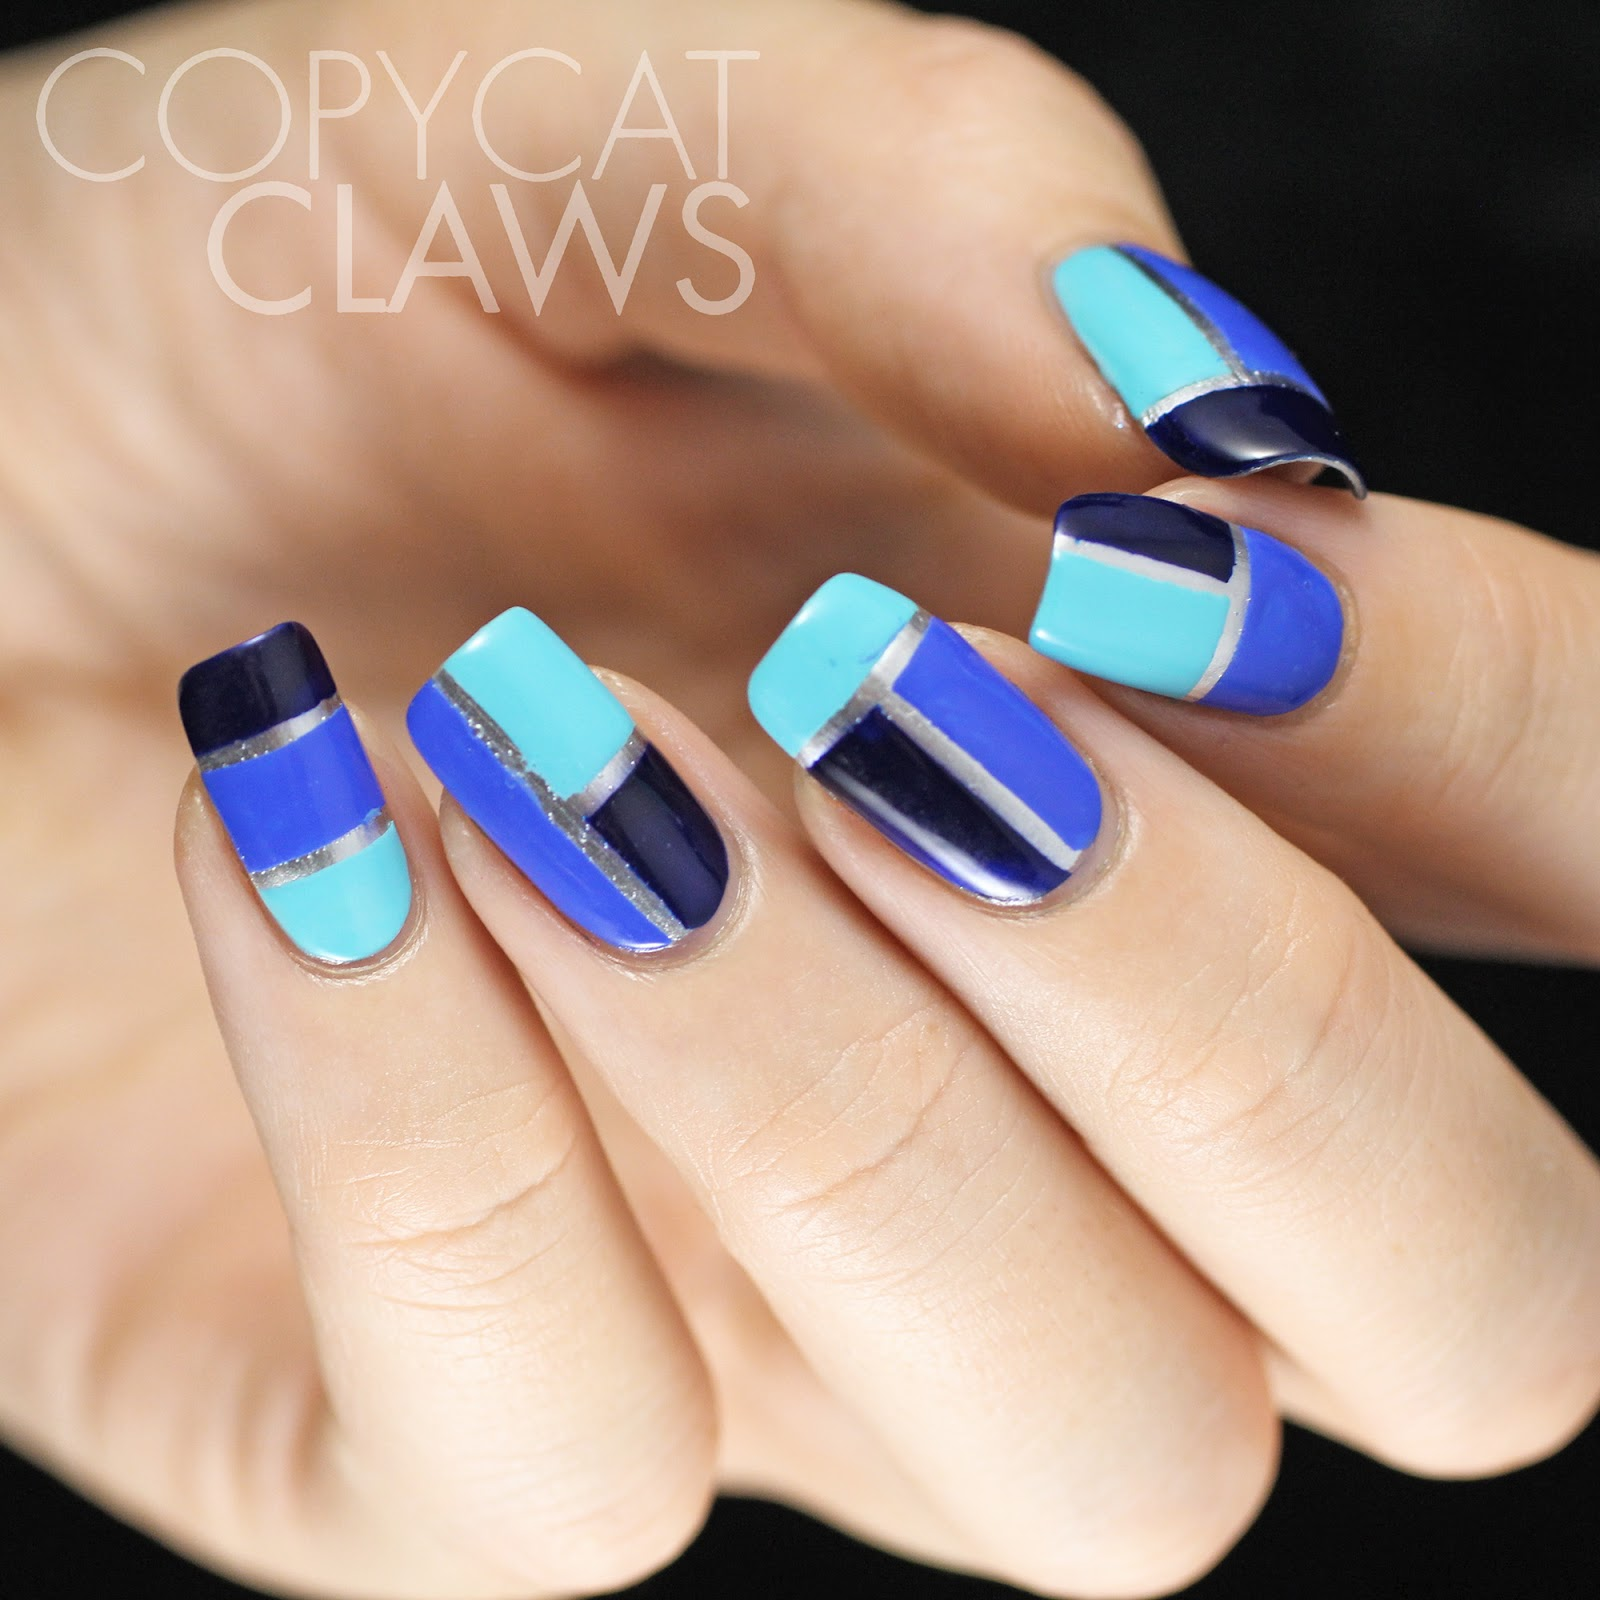 Copycat Claws Blue Color Block Nail Art: Copycat Claws: Blue Color Block Nail Art